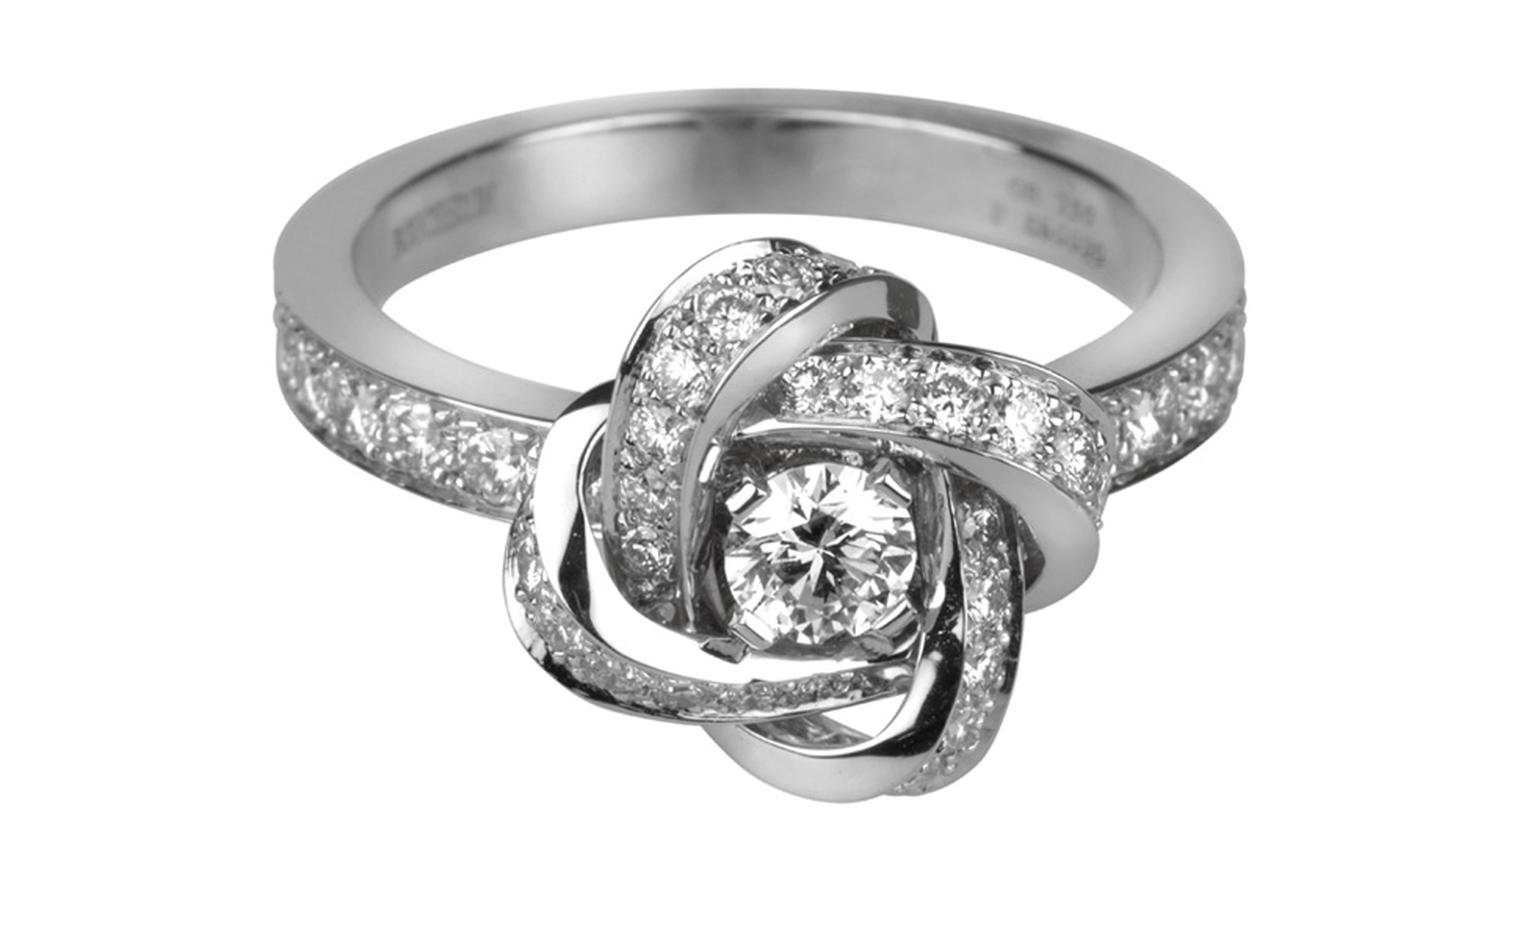 BOUCHERON, Ava Pivoine Ring in white gold paved with diamonds. Price from £2,900